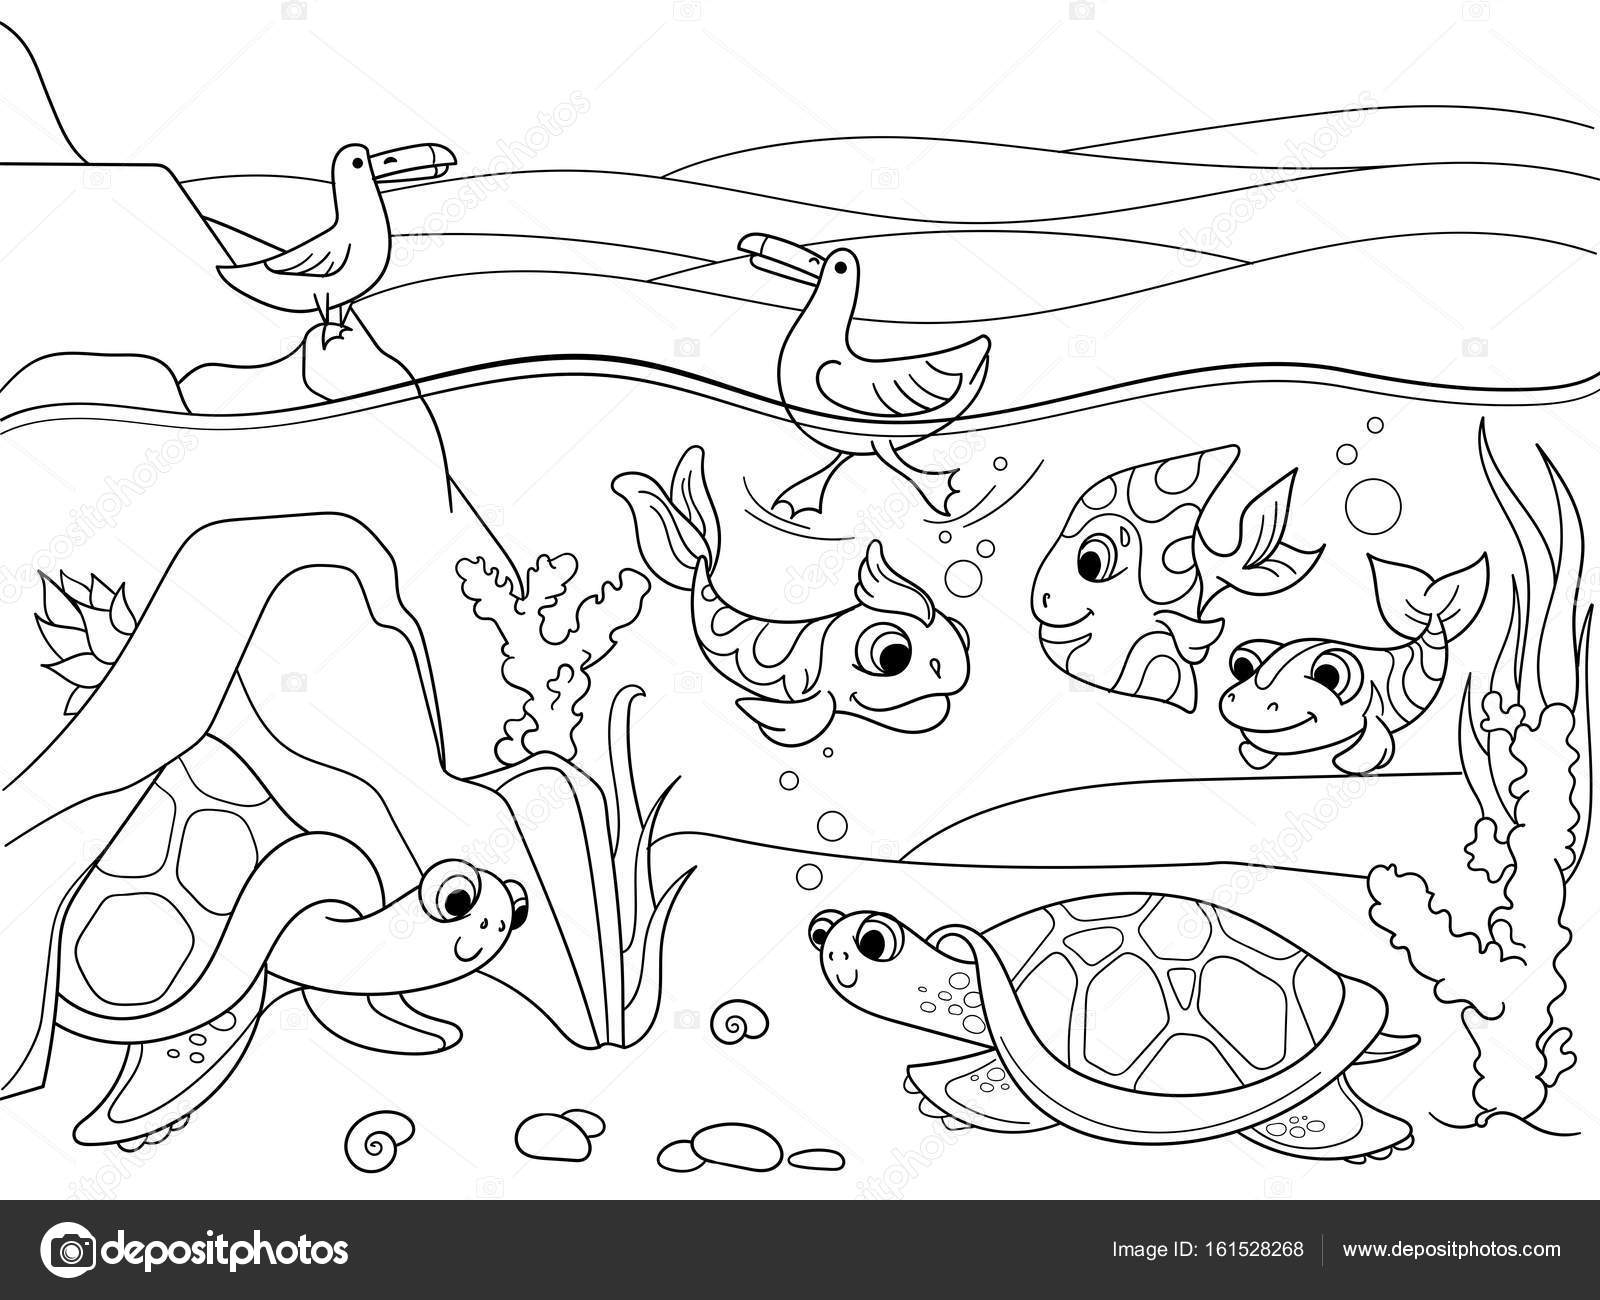 Coloring Pages Of Wetland Animals : Wetland animals coloring page sketch